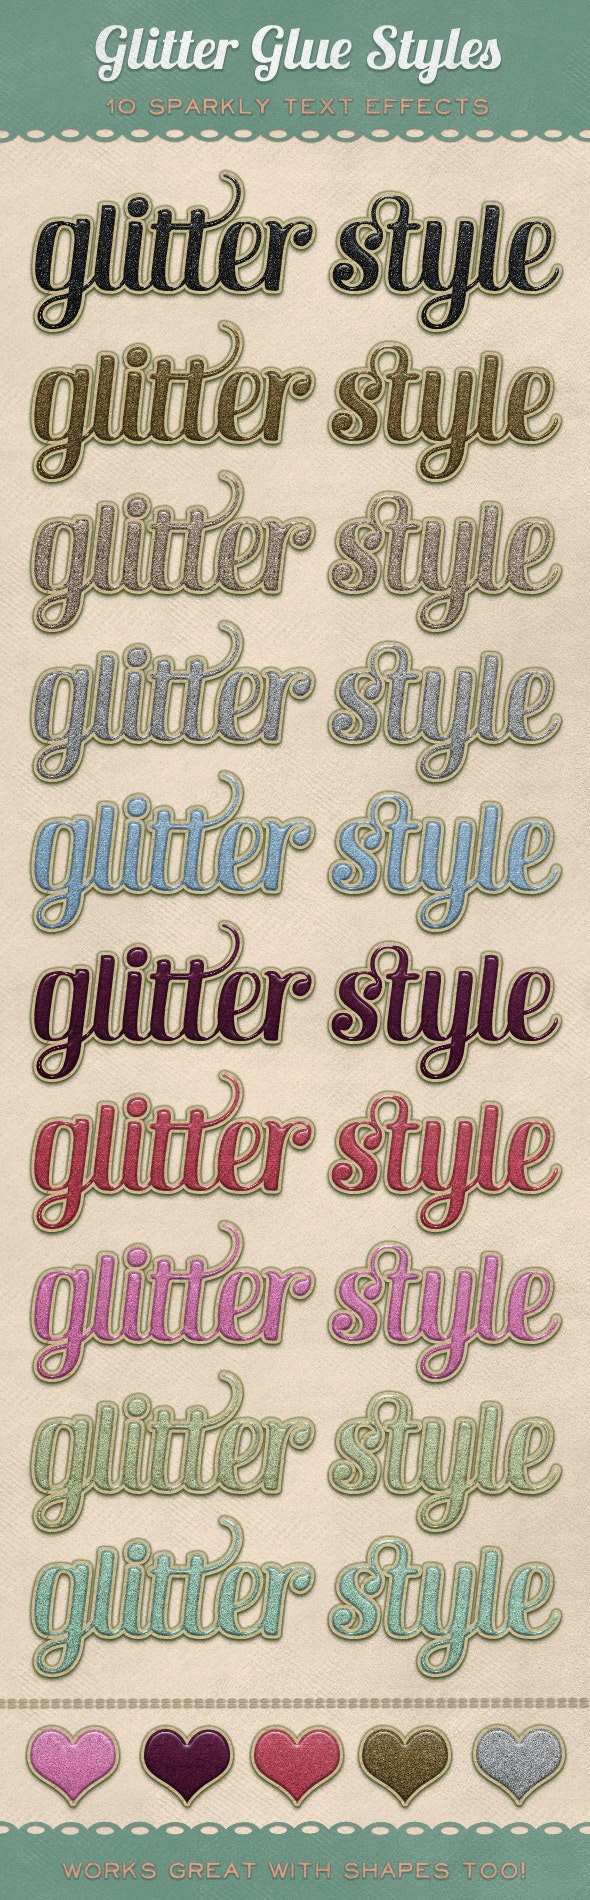 Glitter Glue Styles - Text Effects Styles